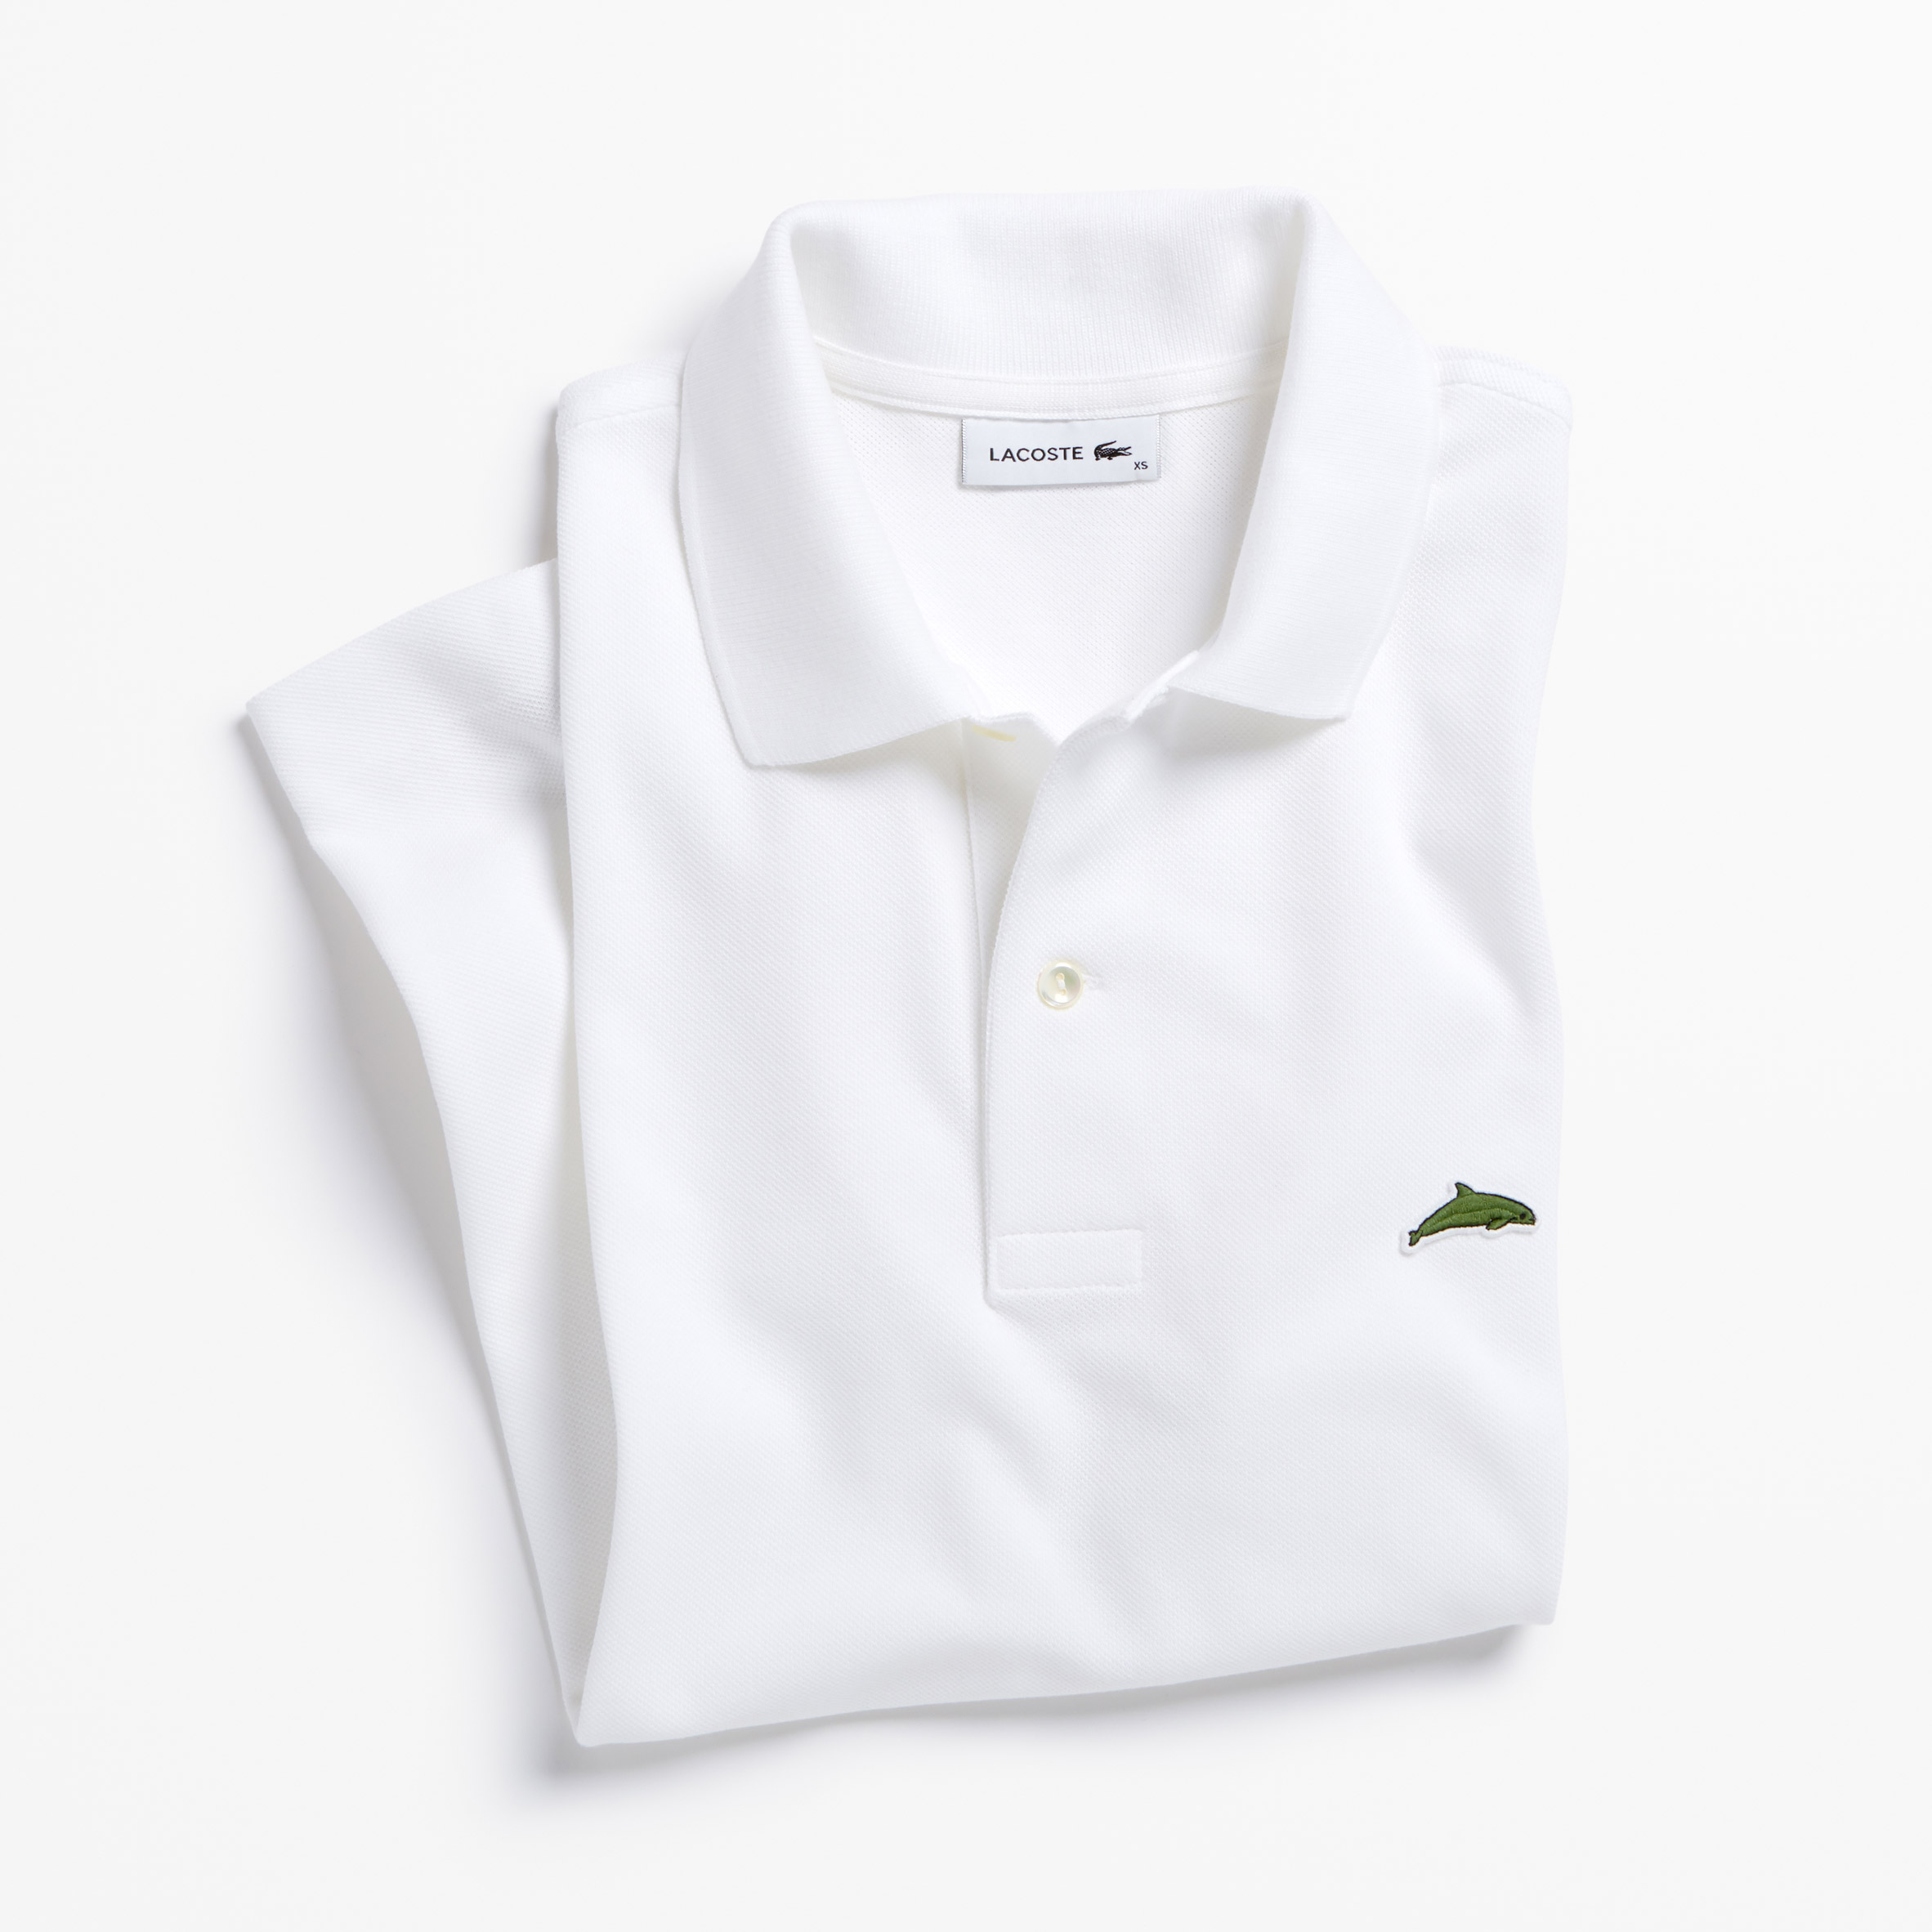 77cb2fcca Lacoste's crocodile logo is replaced by endangered species for limited  edition polo shirts ...